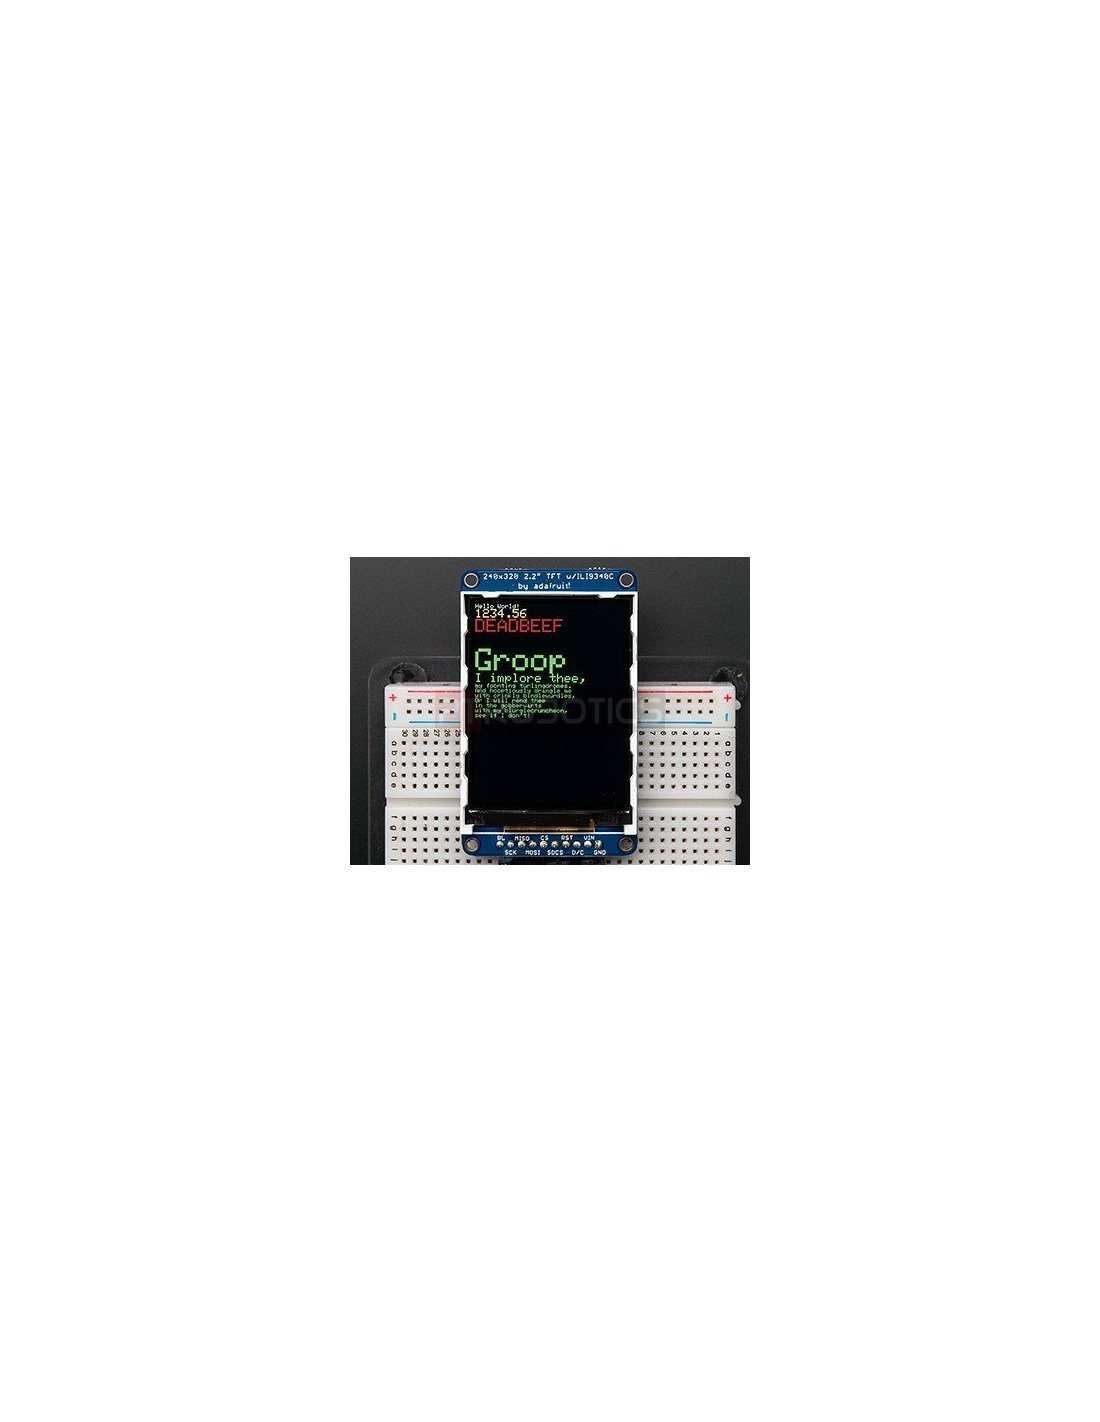 2 2 Quot 18 Bit Color Tft Lcd Display With Microsd Card Breakout Ili9340